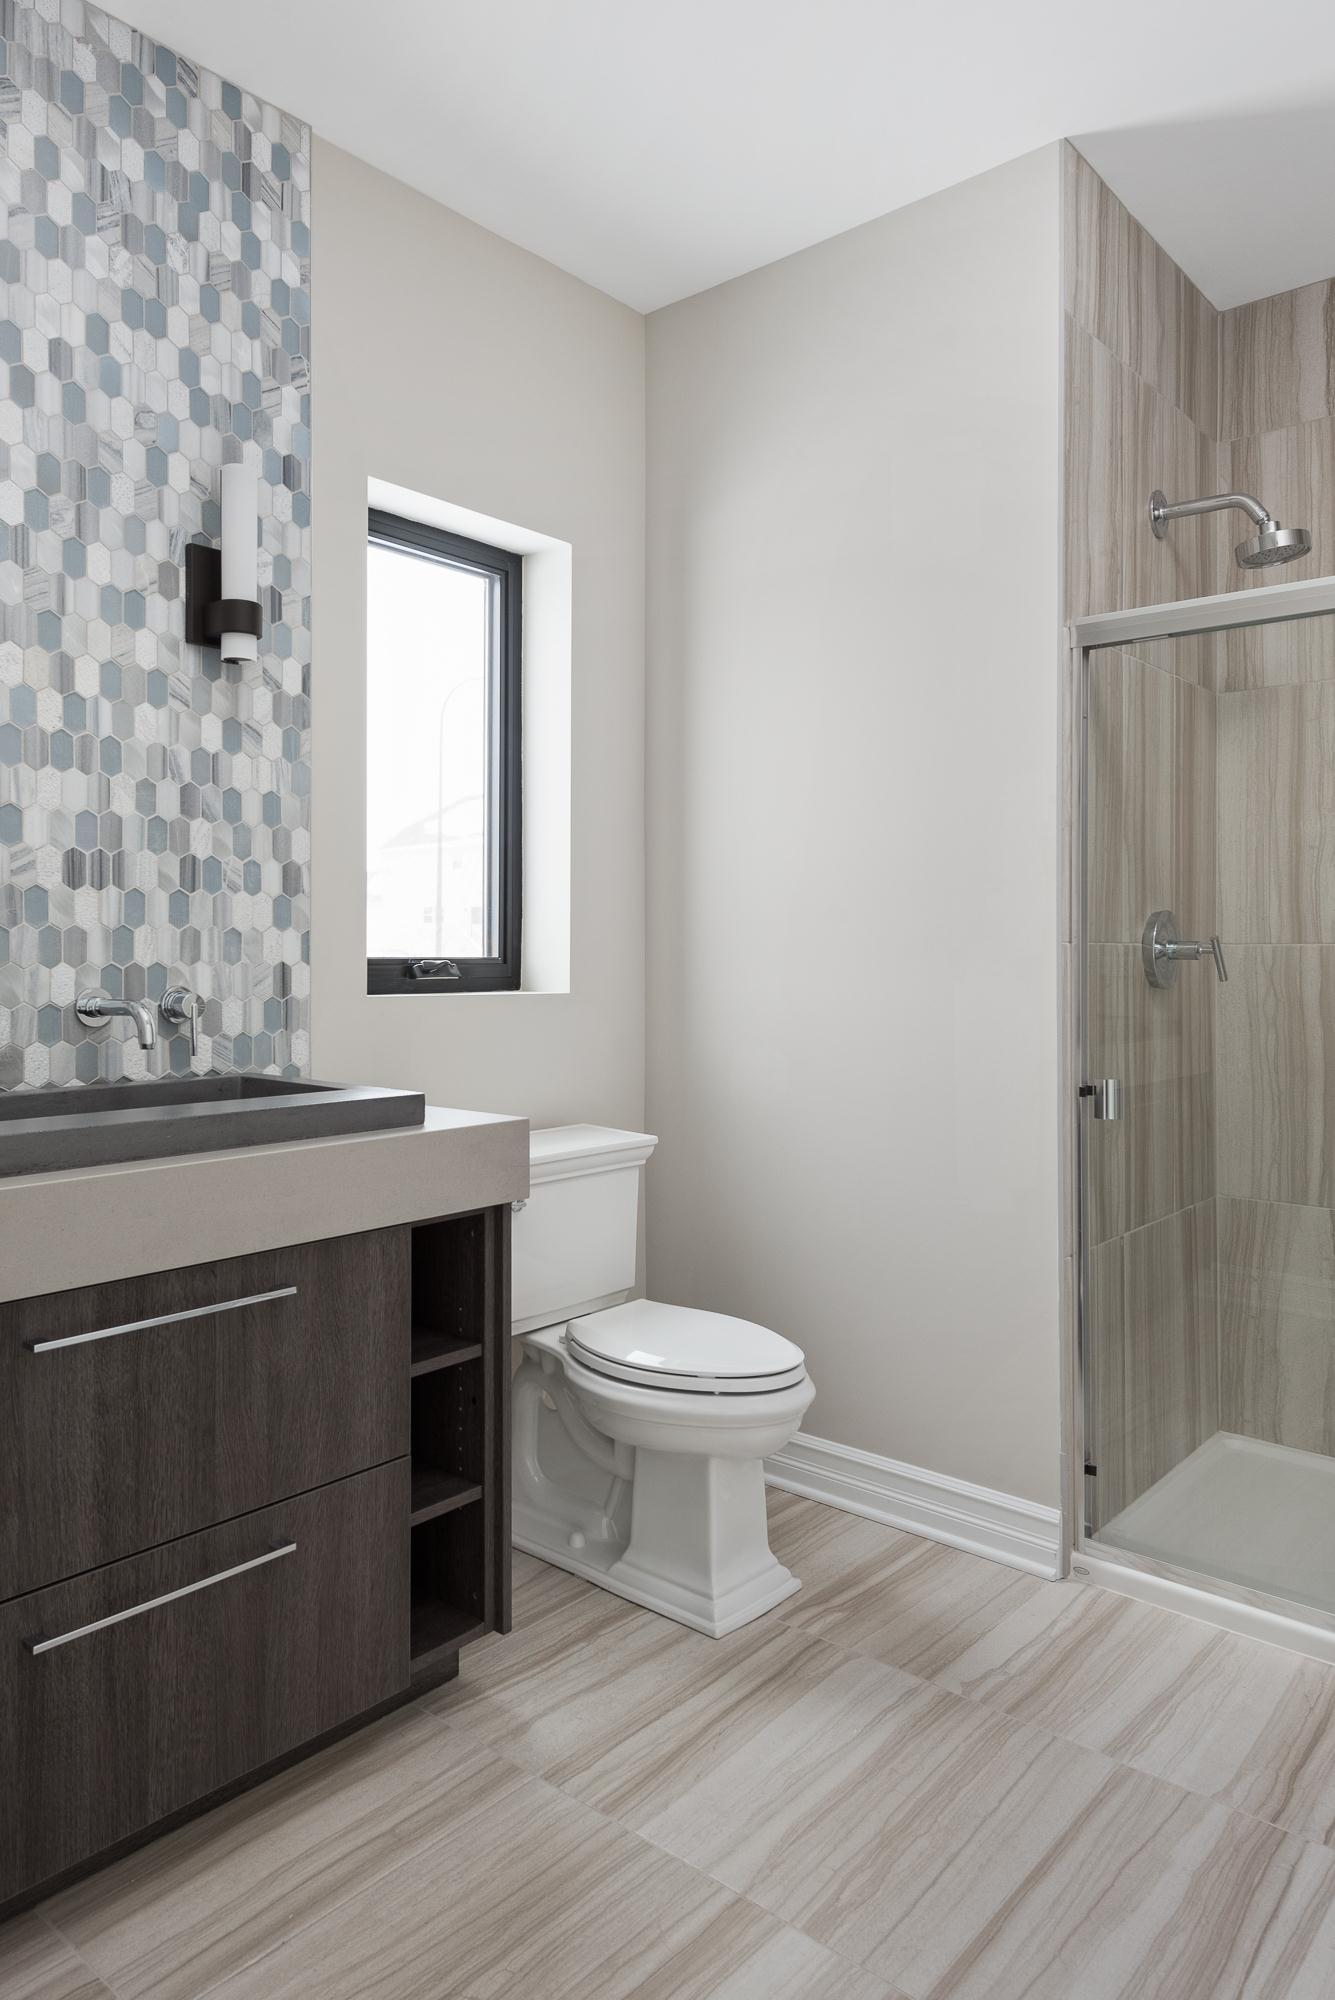 Bathroom featured in the Linden By King's Court Builders in Chicago, IL